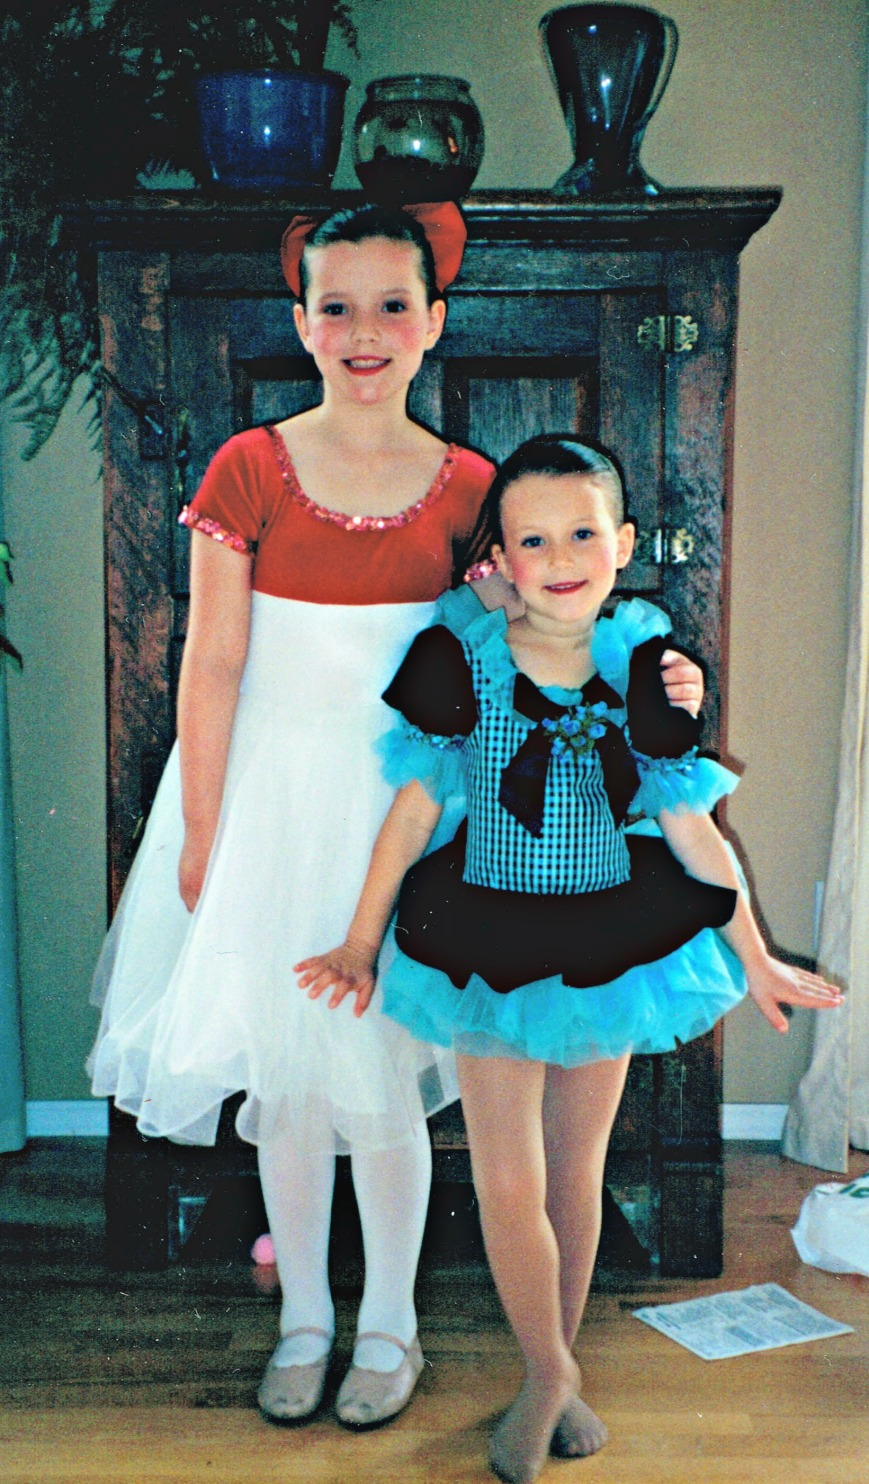 Ballerinas and Icebox07232013_0000